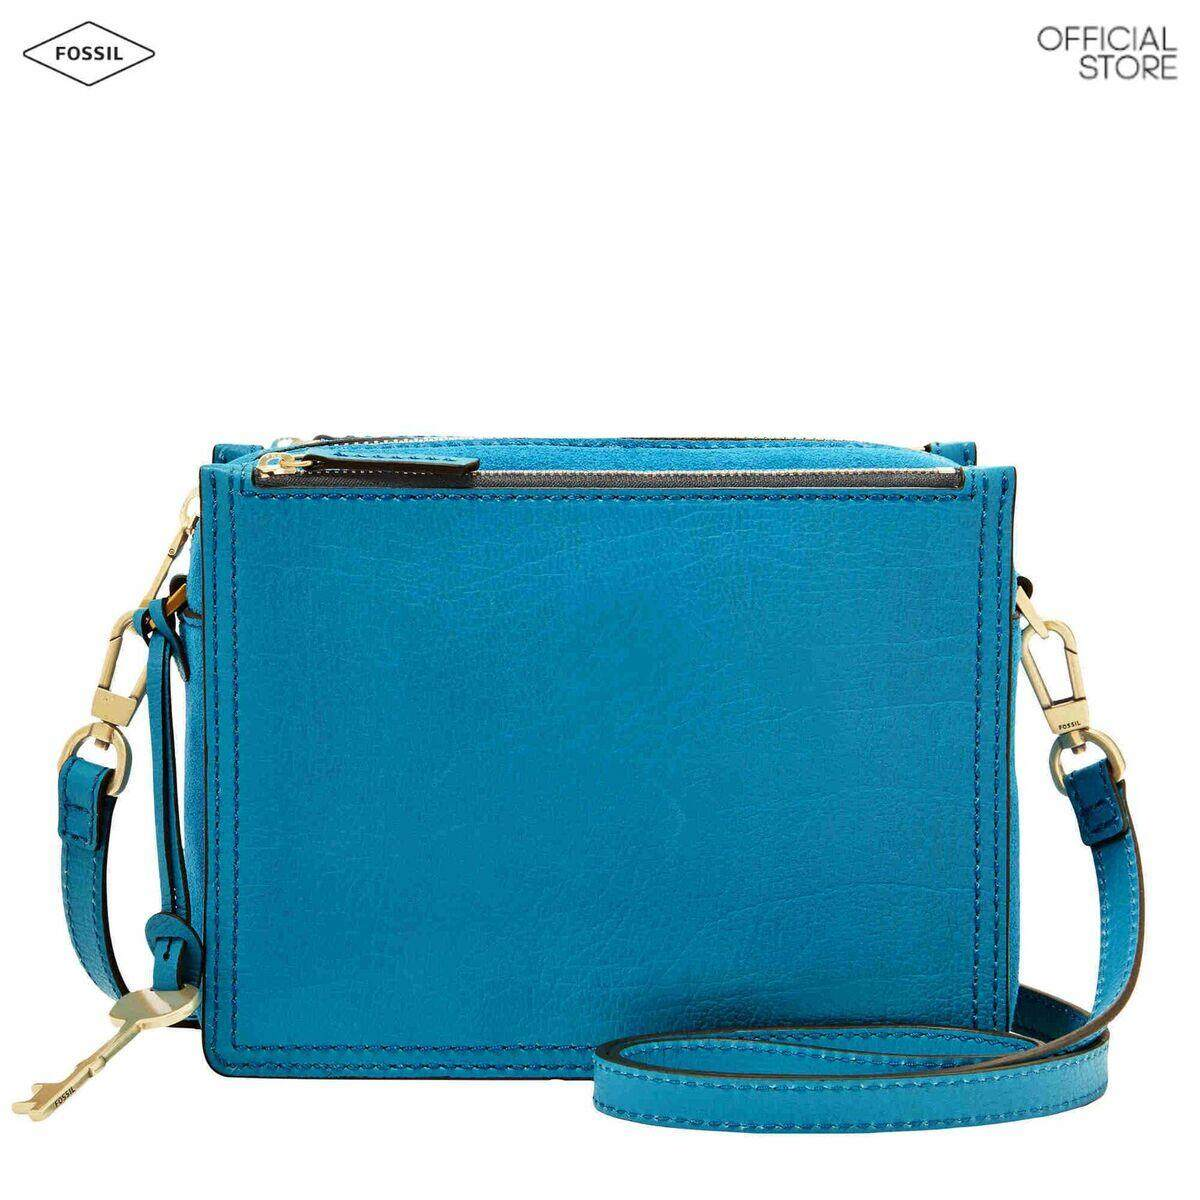 Fossil Women Bags Price In Malaysia Best Lazada Emma Tote Blue Print Campbell Sling Bag Zb7449977